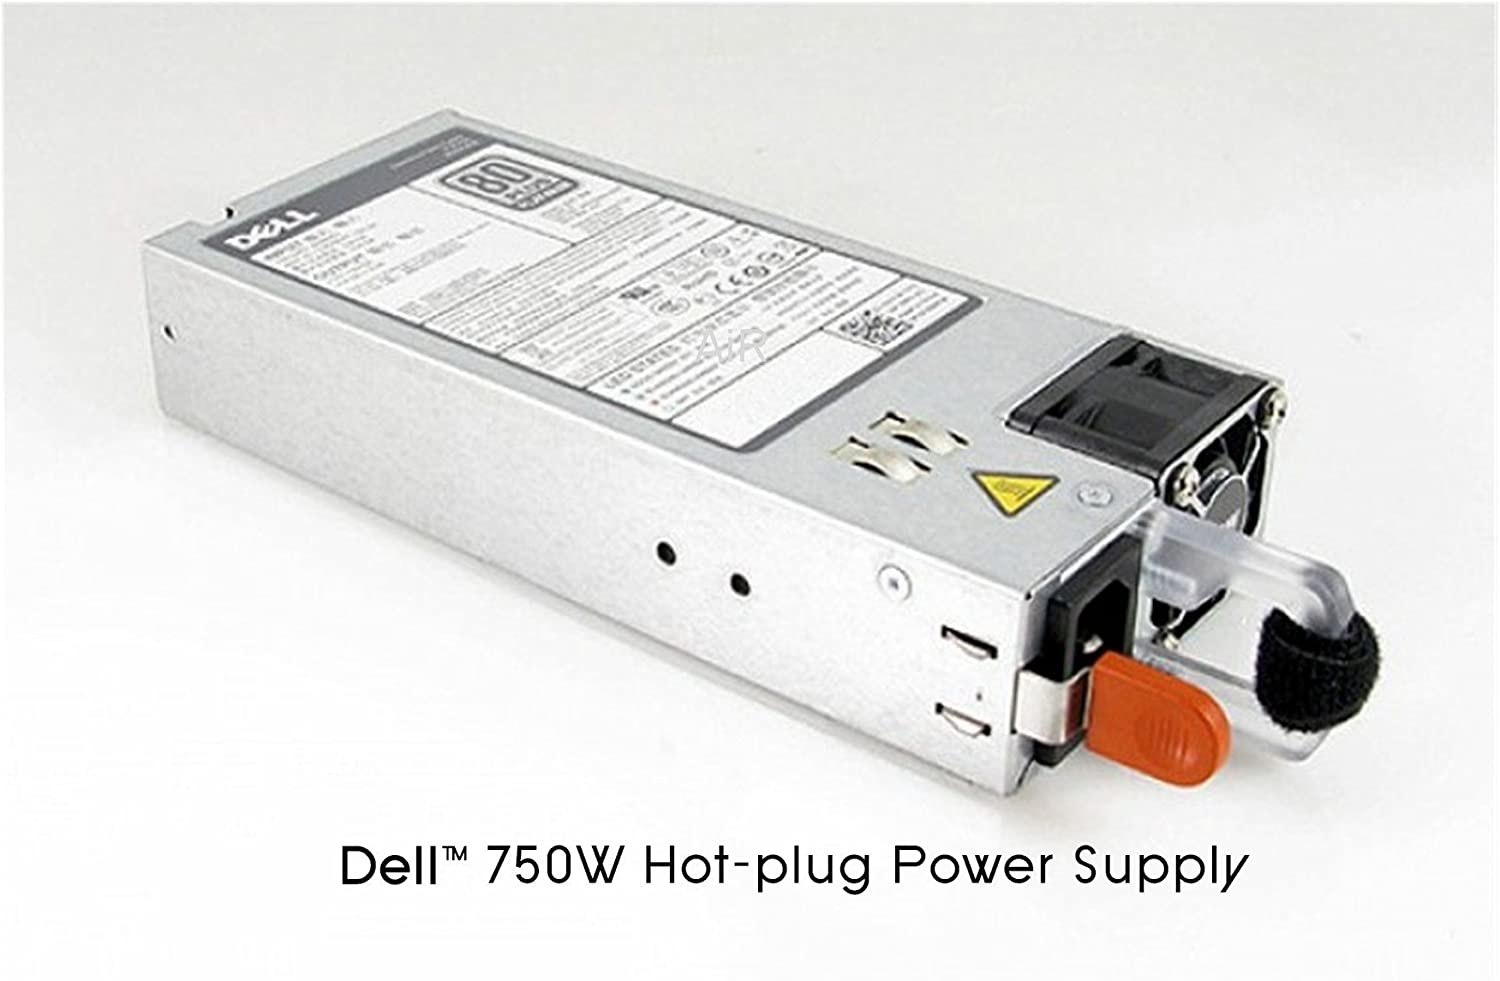 750W redundant power supply for Dell PowerEdge R720, R720XD, R520, R620, R820, T320, T420 and T620 server. (Renewed)